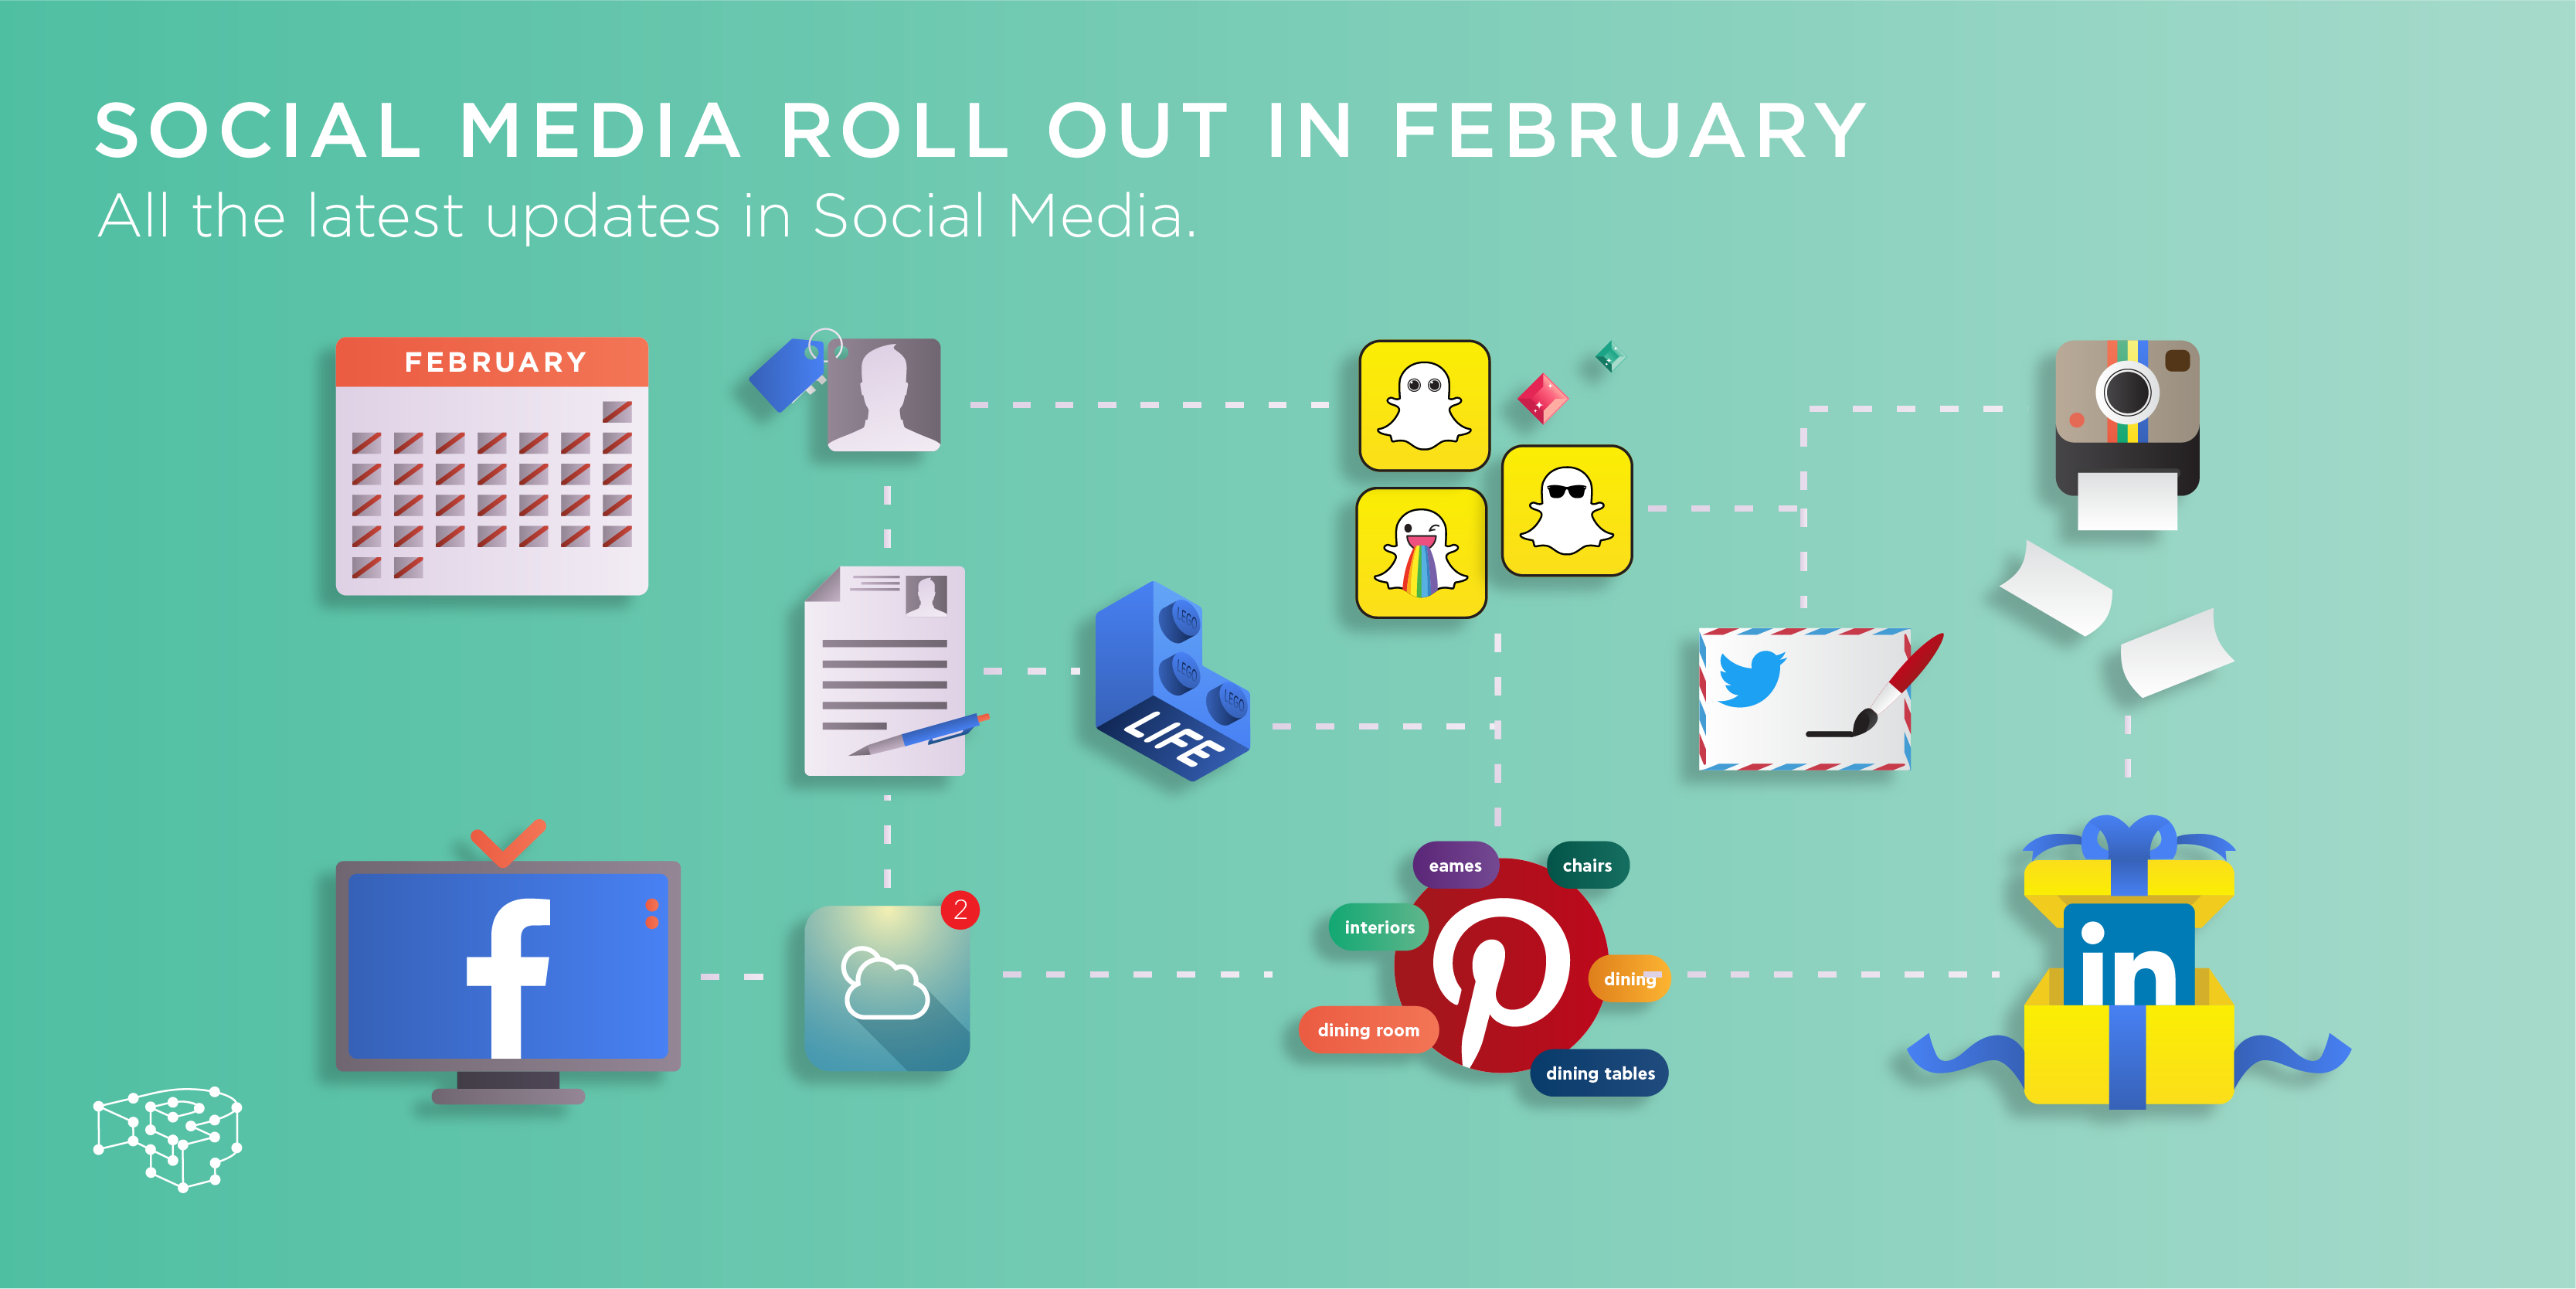 Social media roll out in February